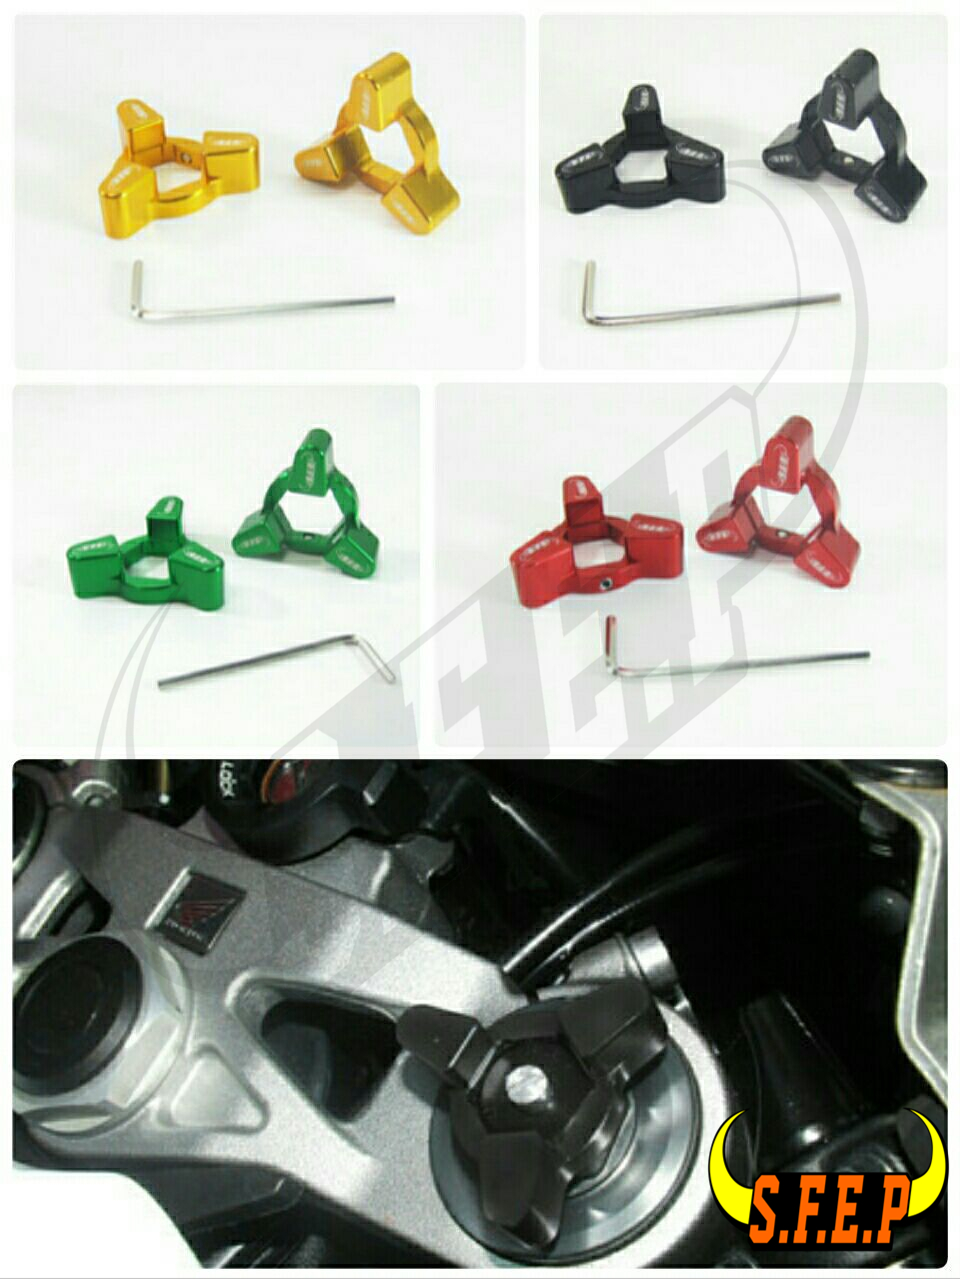 Motorcycle CNC Fork Preload Adjusters For Kawasaki ZX6R 07-08/ Z1000 07-10/ VERSYS 09-10